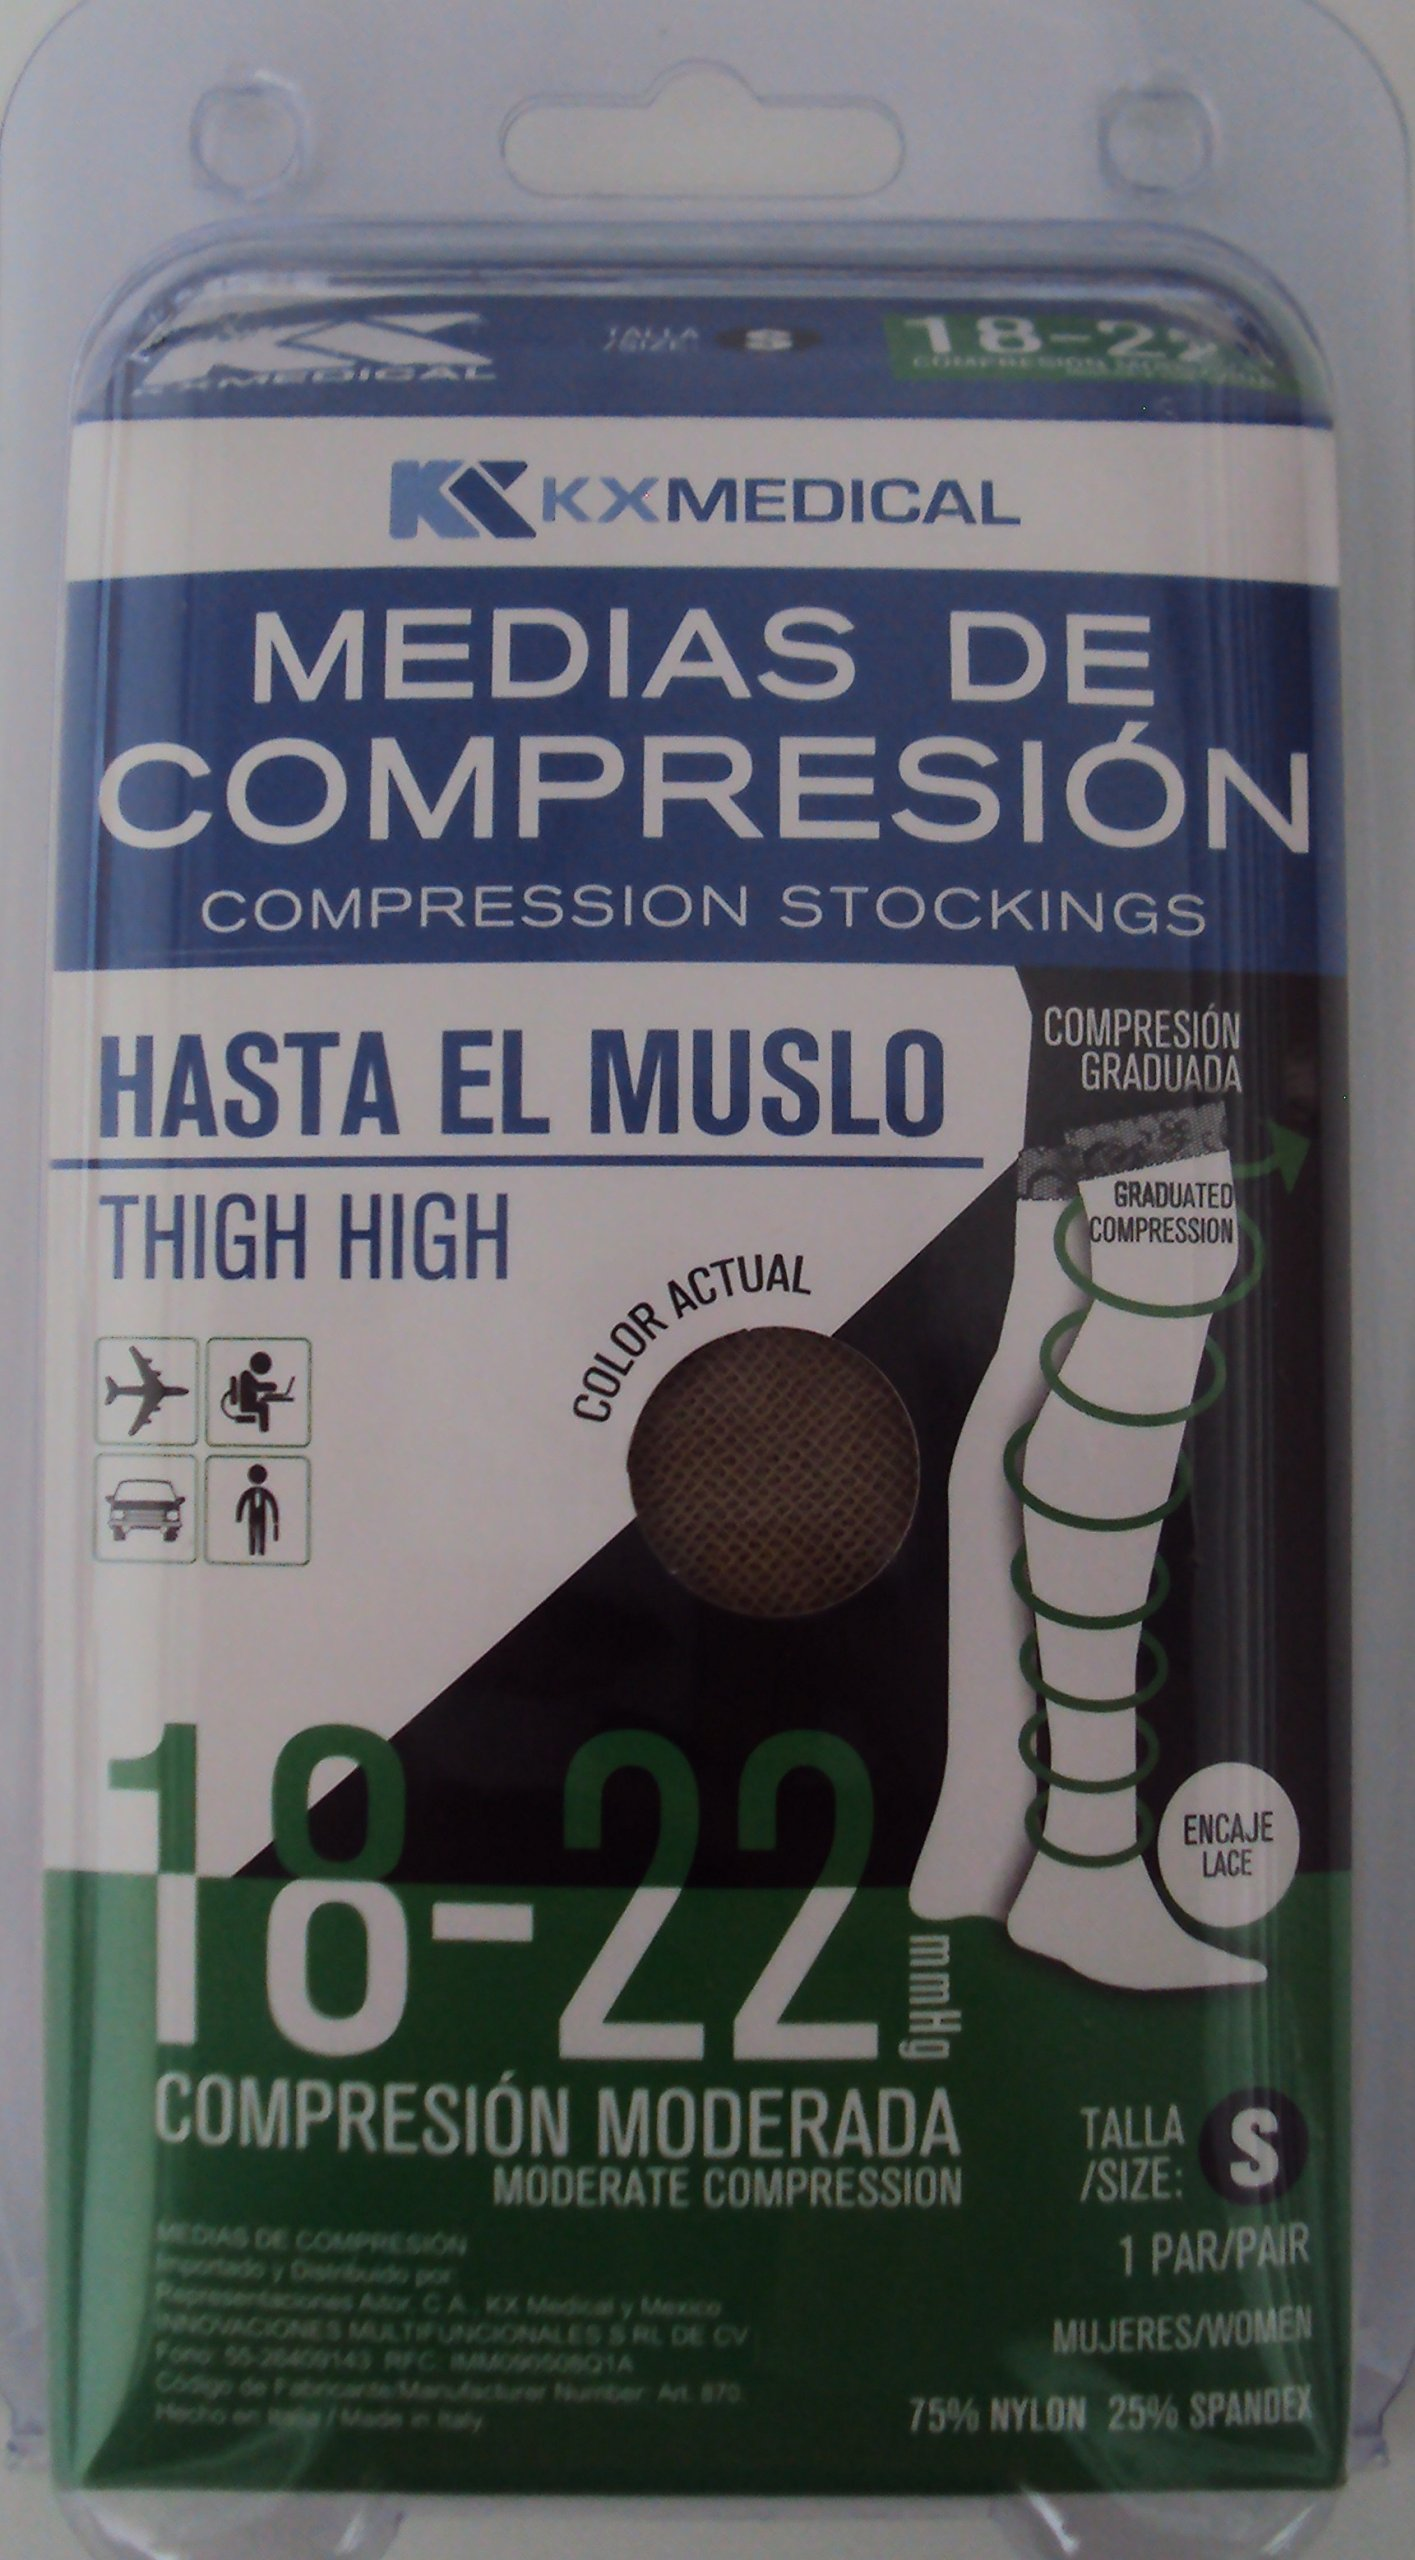 Thigh High Compression Stocking 15-20 mmHg (CE 18-22 mmHg) For Women. Size Small. Made in Italy. FDA. Recommended For Varicose Veins Socks, Dress Socks, Flight Travel (MC125US)